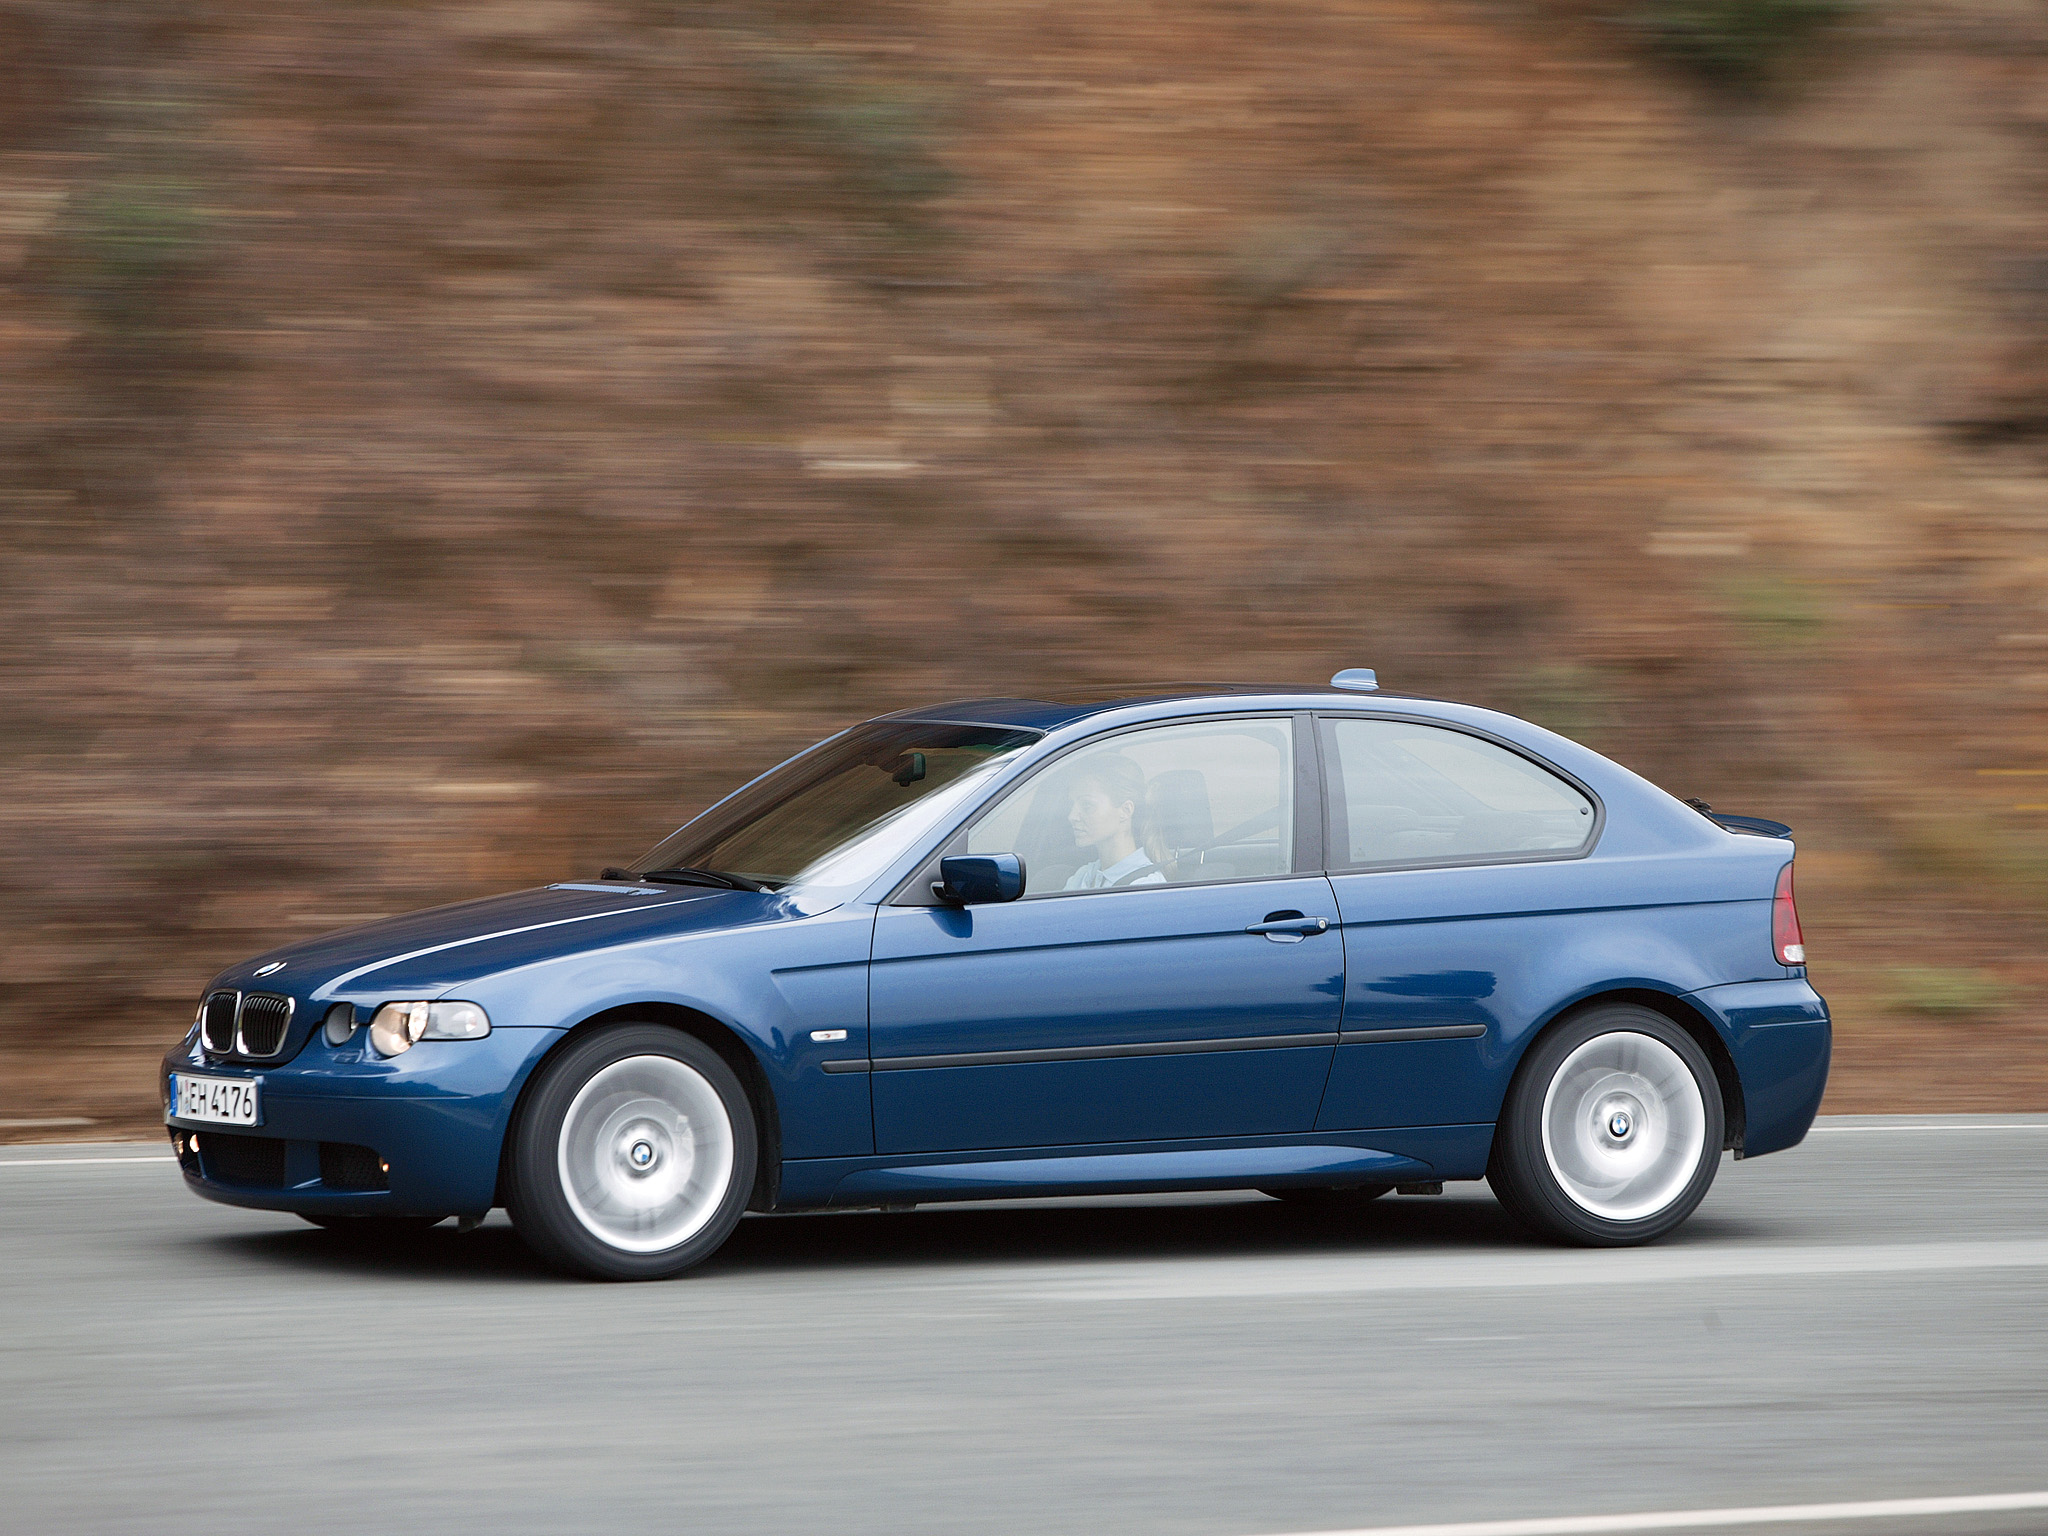 BMW 3 series 325ti 2001 photo - 3